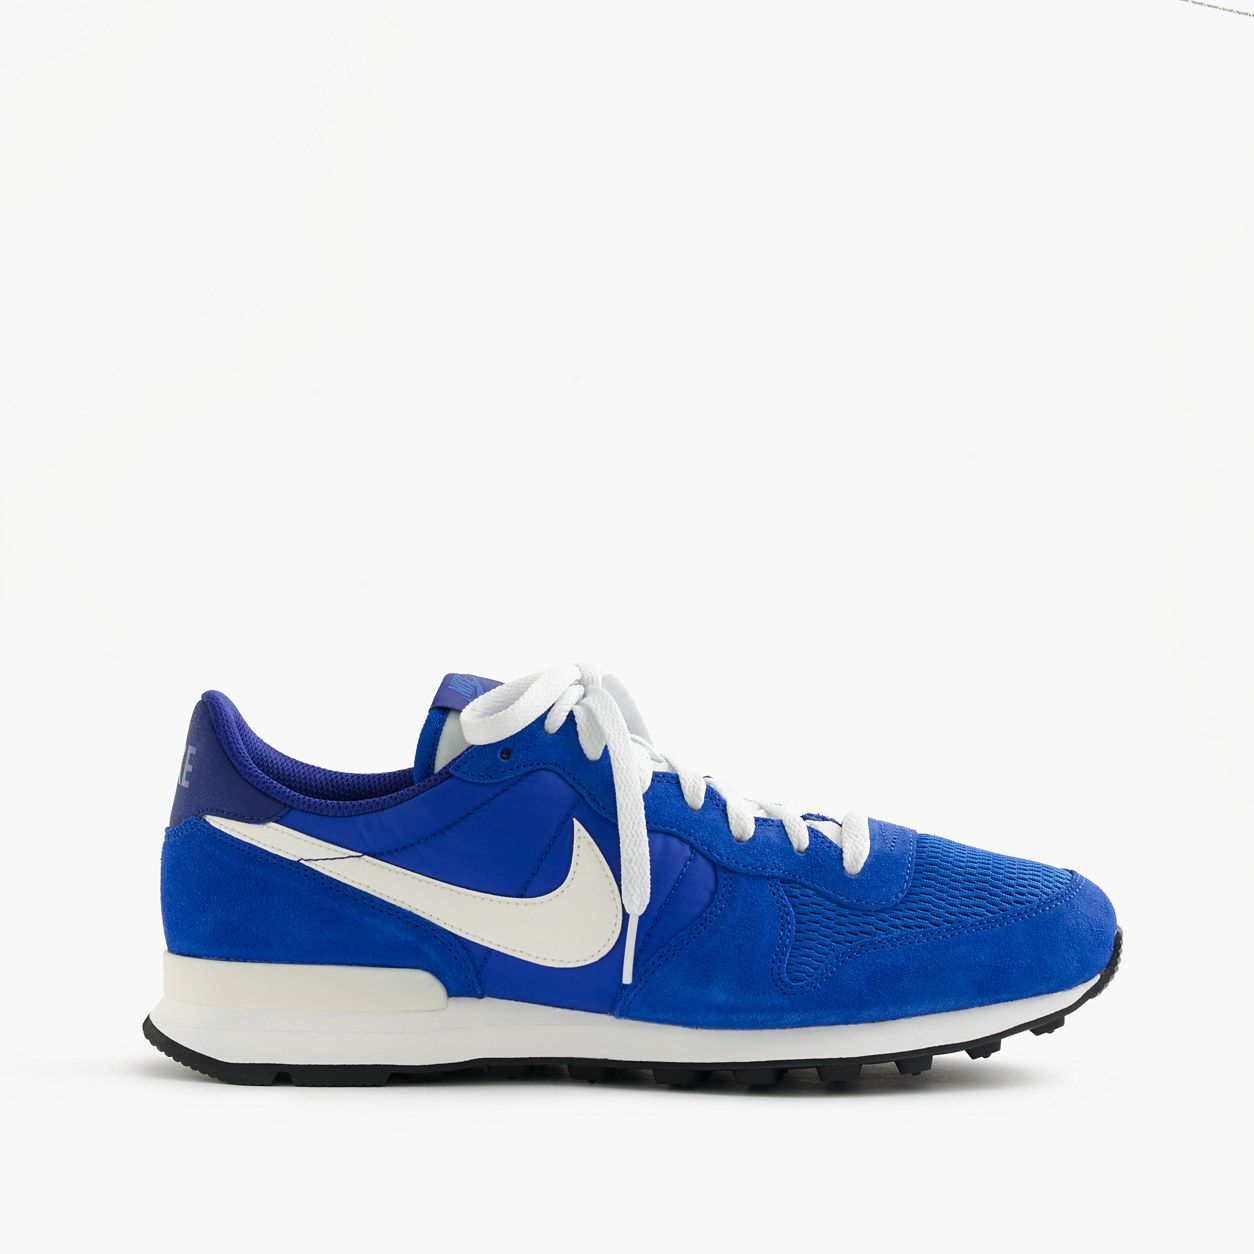 cheap for discount ebcbb dfc18 J.Crew Mens Nike Internationalist Mesh And Suede Sneakers In Royal (Size  10.5 M)